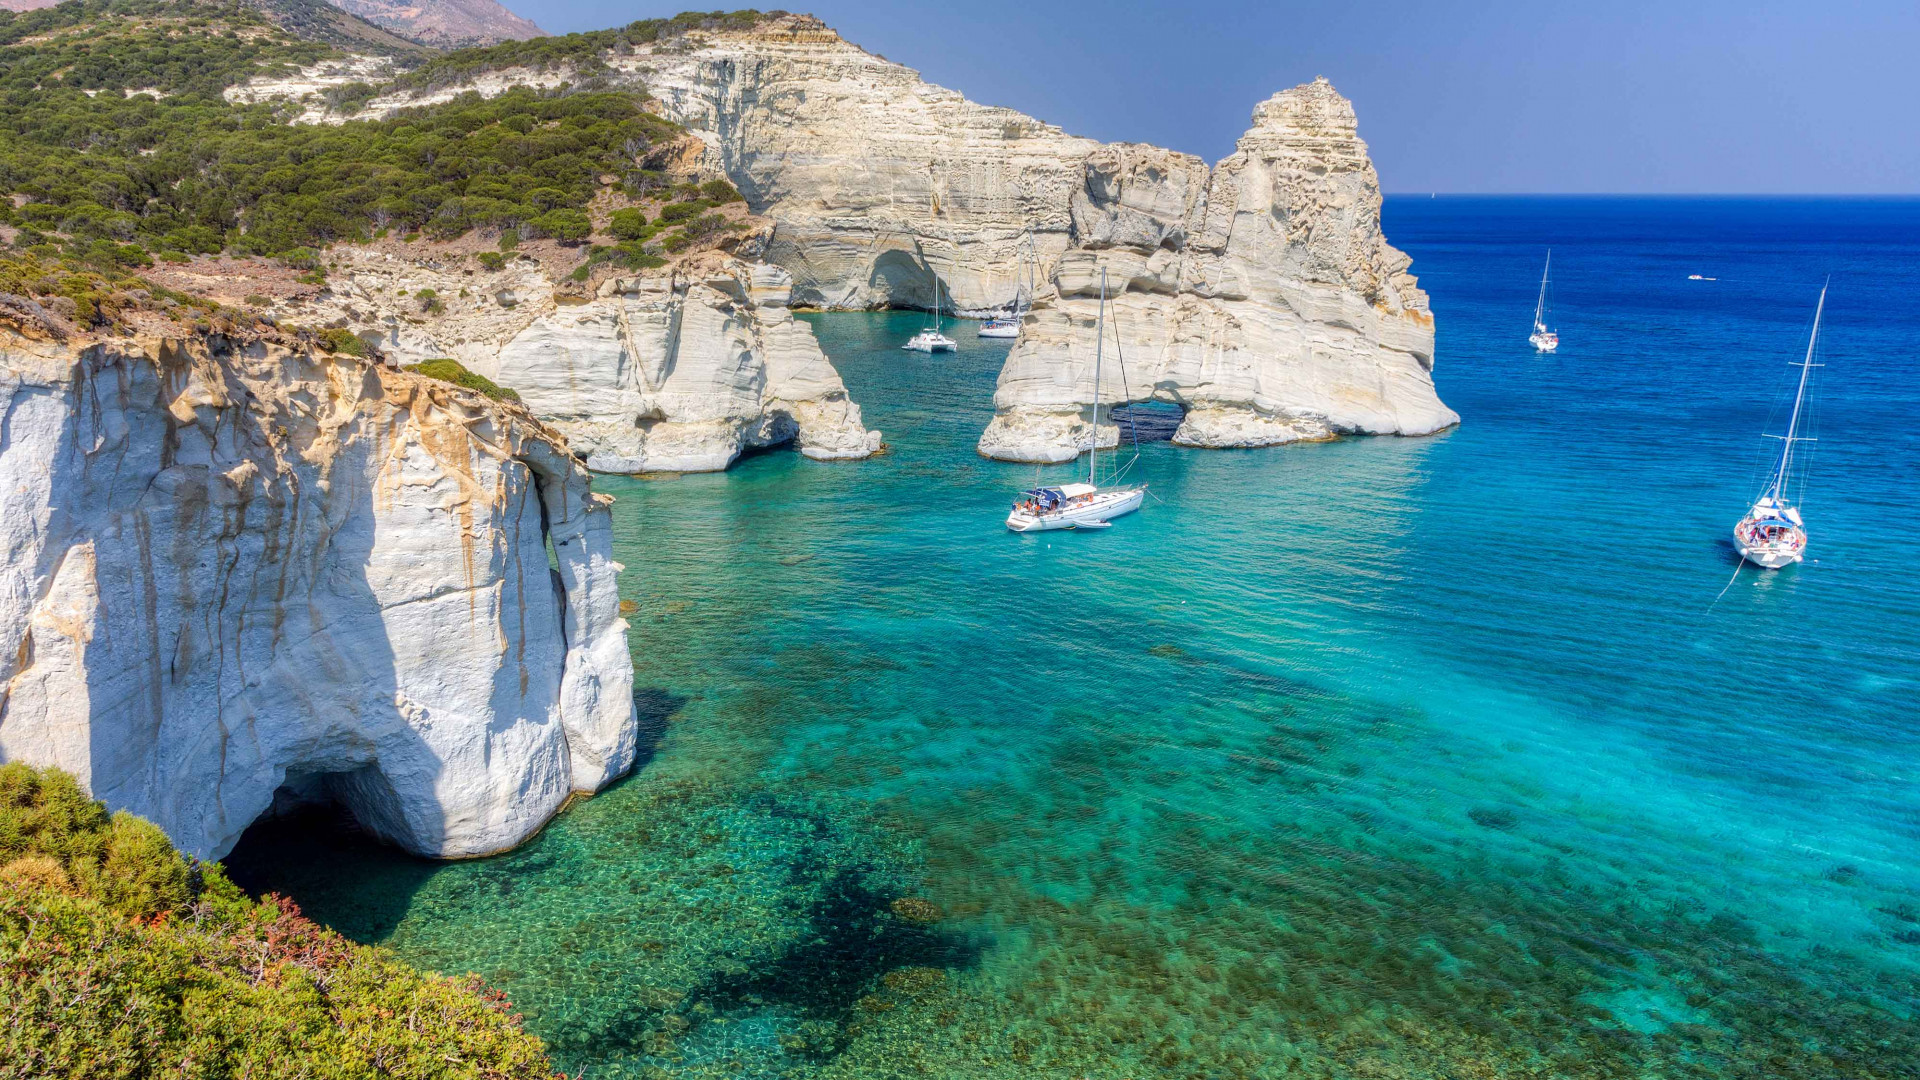 The isle of Milos in Greece